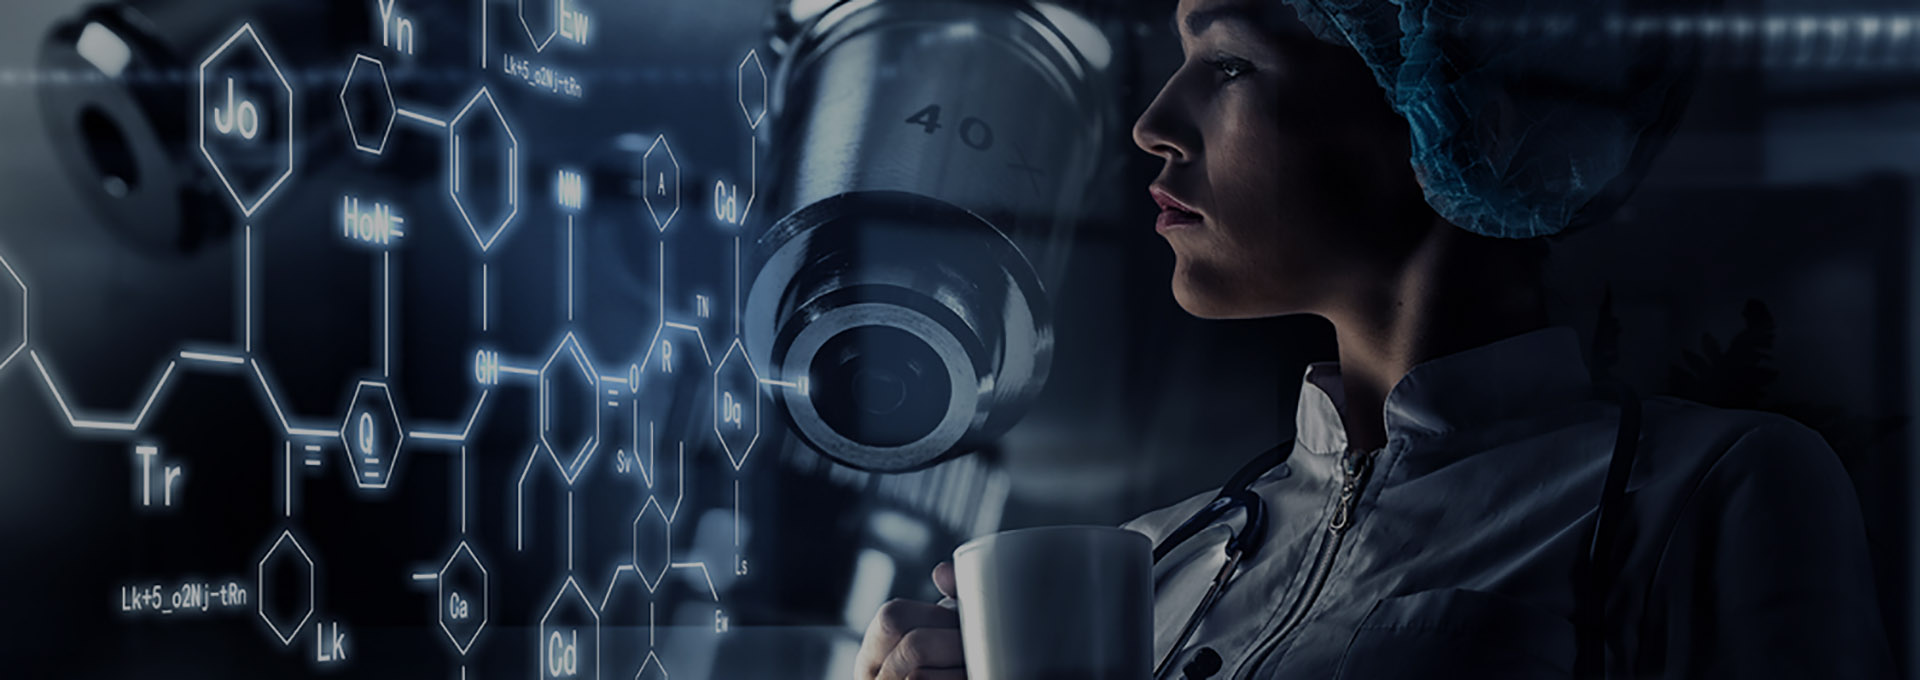 Blockchain technology will improve the healthcare and pharmaceutical industries